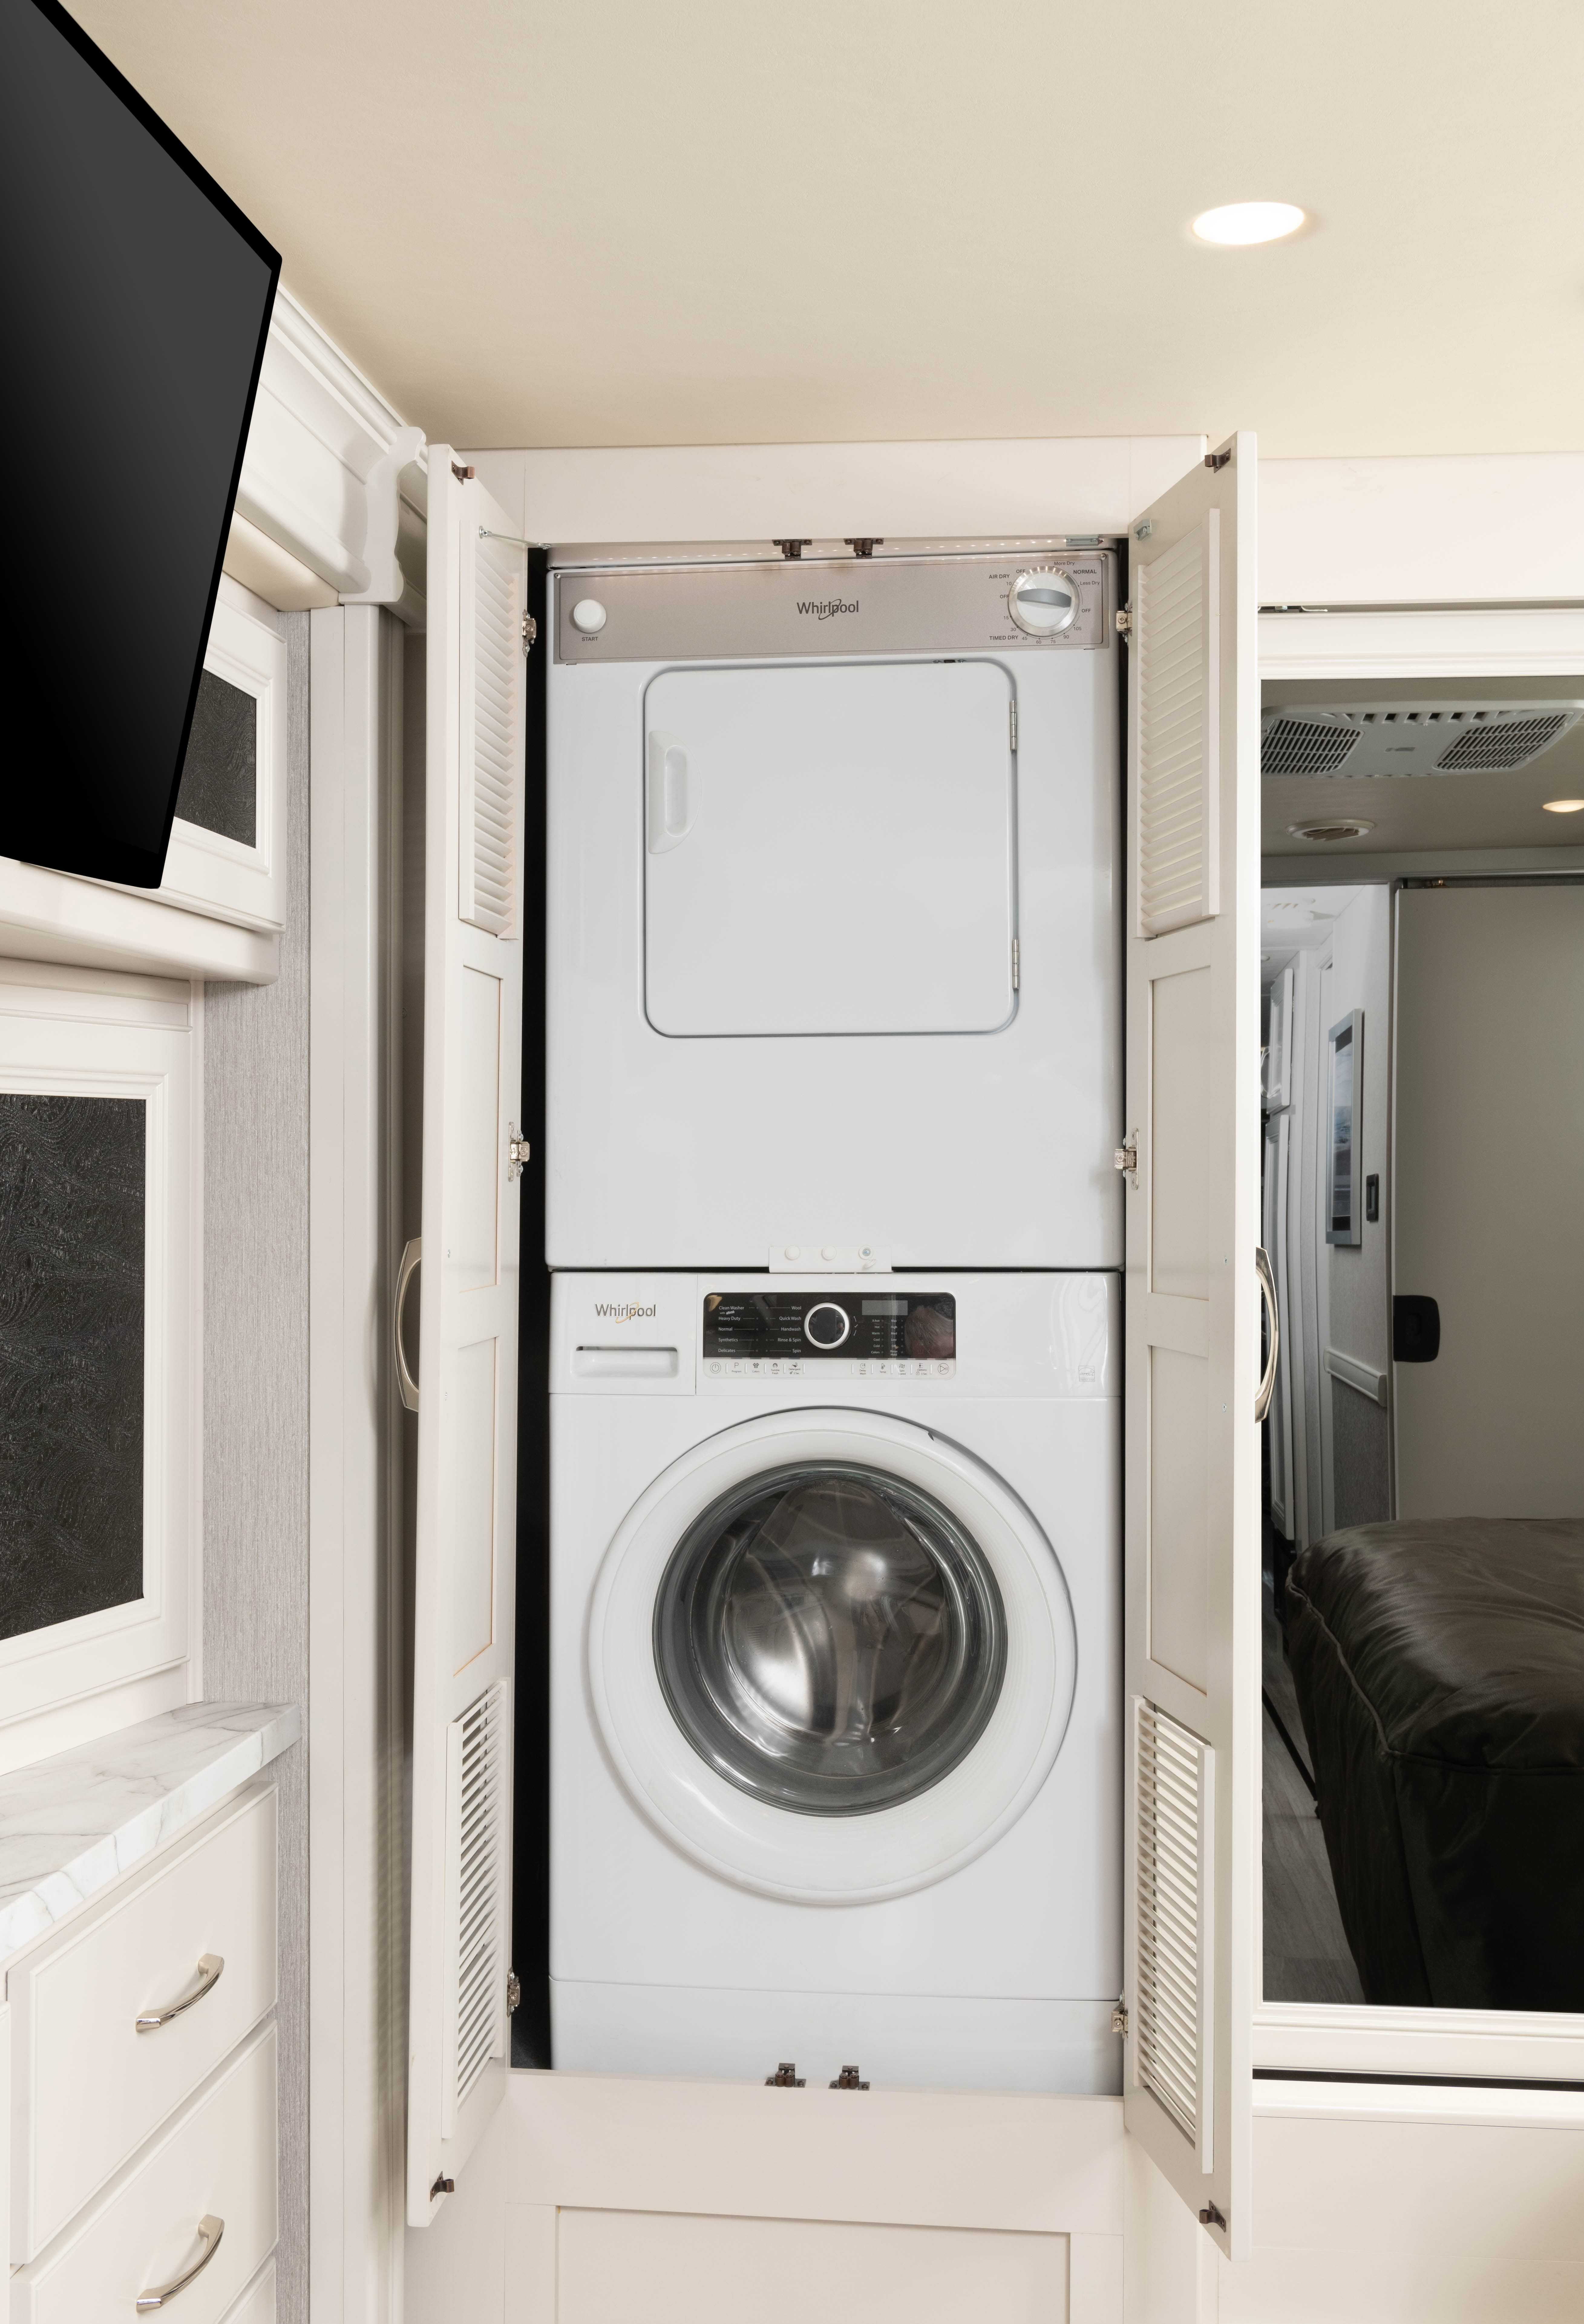 20 washer dryer Frontier34 GT Alloy Heritage1717 MY22